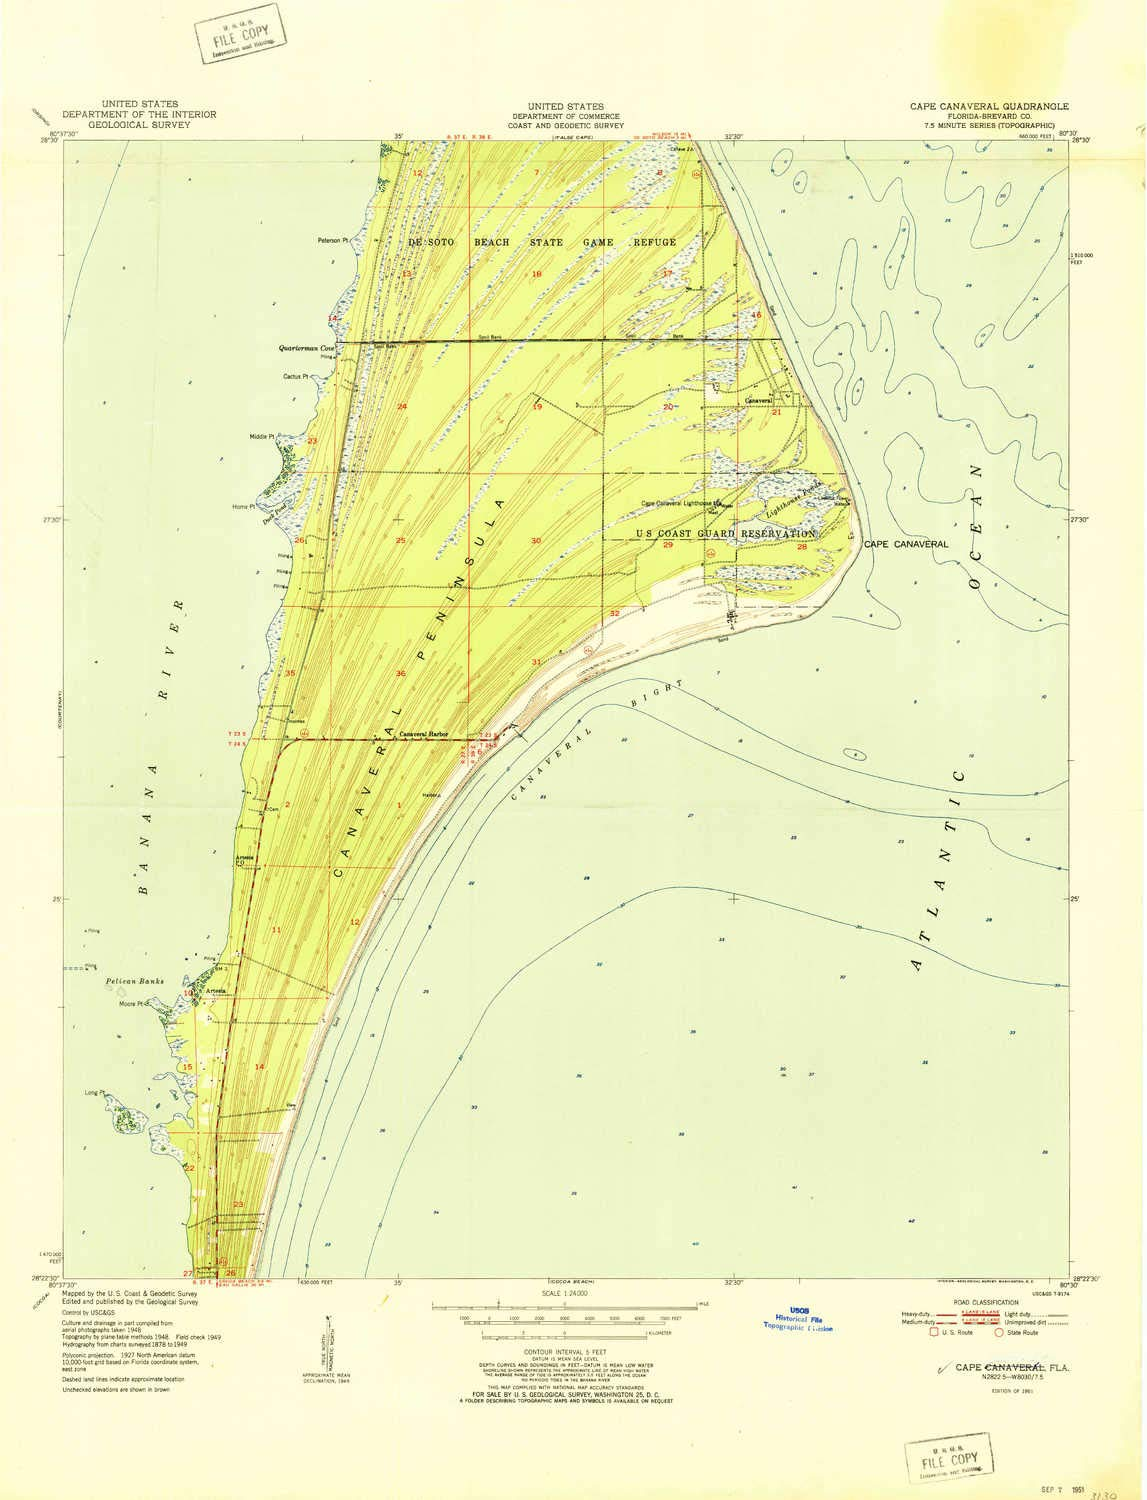 Amazon.com : YellowMaps Cape Canaveral FL topo map, 1:24000 ... on myakka map, southwest gulf coast map, cape kennedy map, frostproof map, cape blanco map, cape hatteras map, canaveral groves map, beach in indialantic fl map, lake okeechobee map, gladeview map, cape cod map, great basin map, south daytona beach map, canaveral port authority map, florida map, canaveral barge canal map, st. augustine map, key west map, cape flattery map, the everglades map,